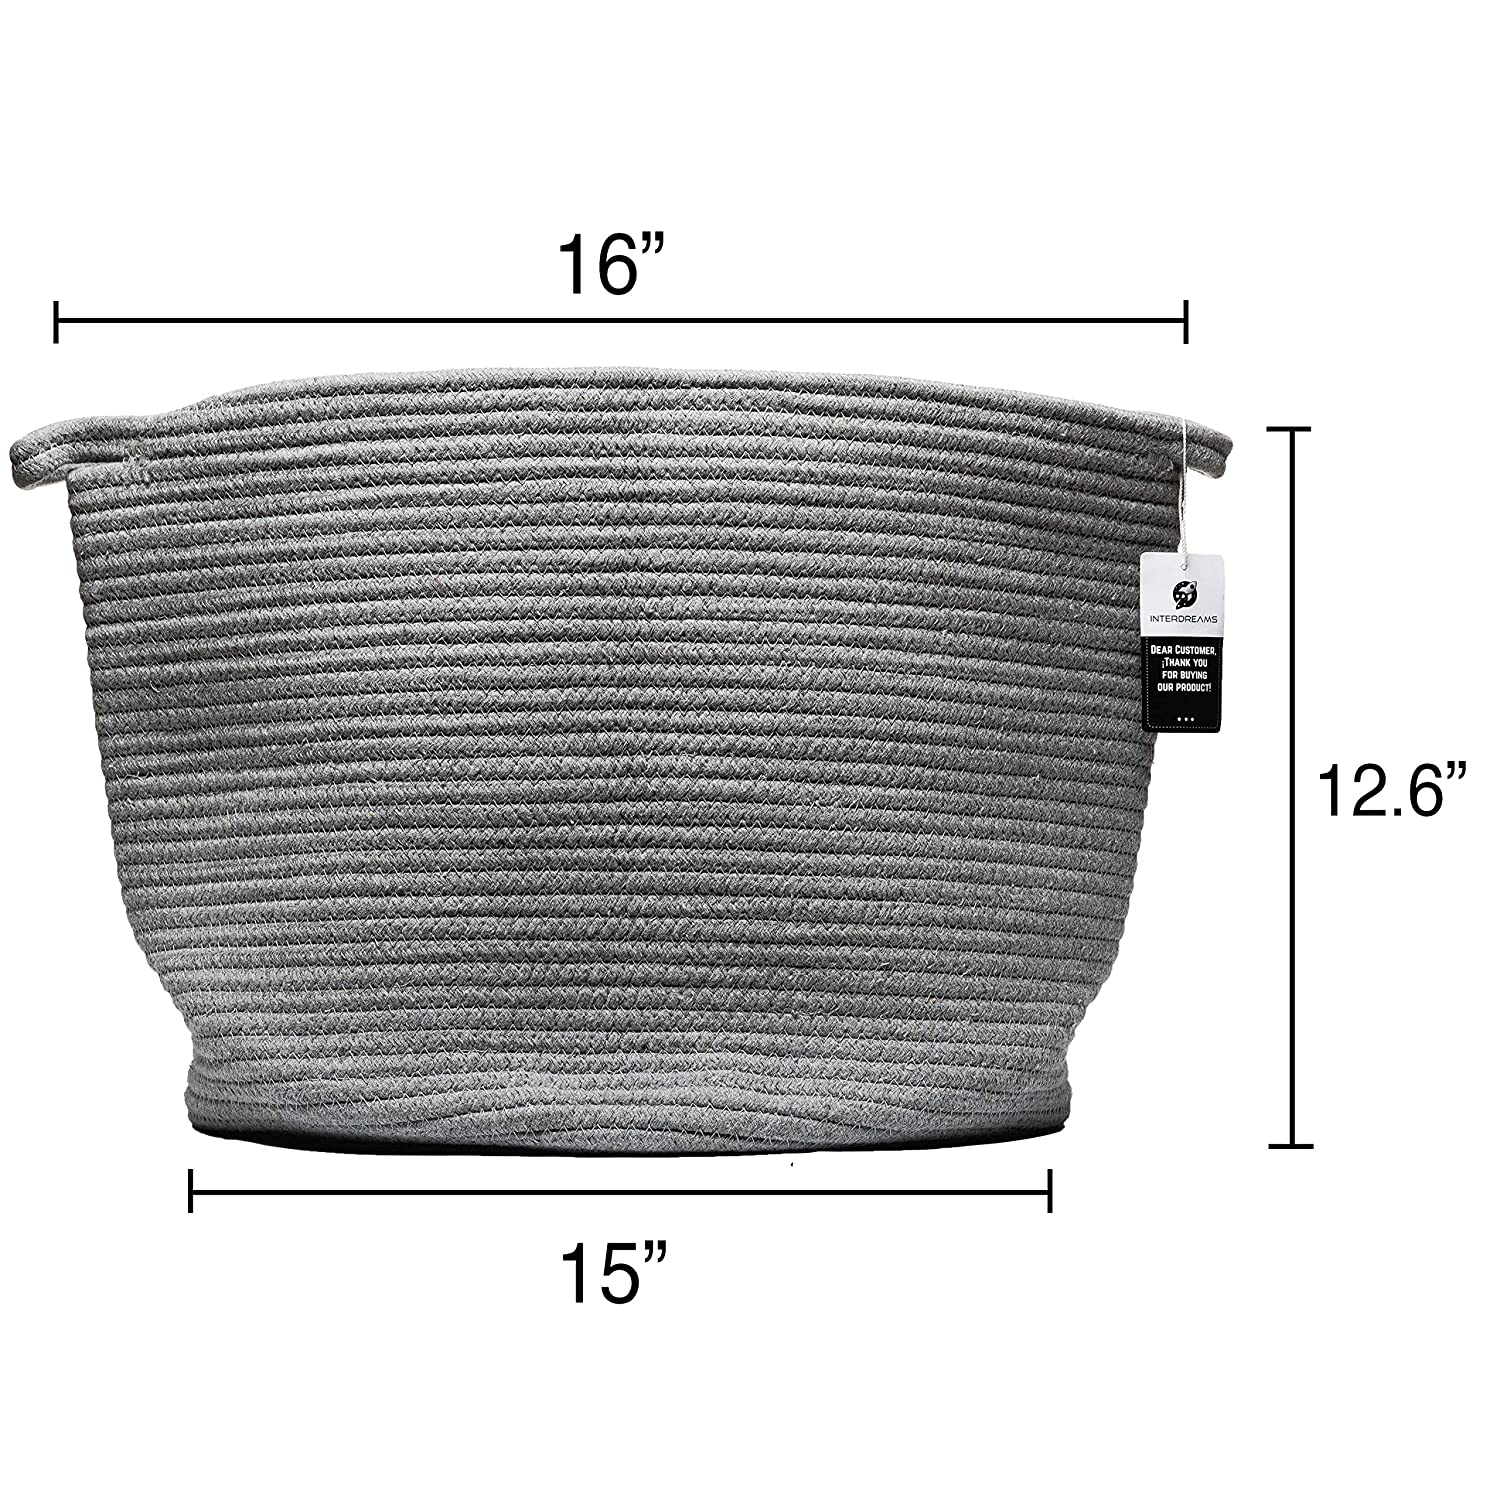 dc608701c560 Round Baby Diaper Laundry Basket with Handles Grey Wicker Basket for Fabric Extra  Large Cotton Rope ...